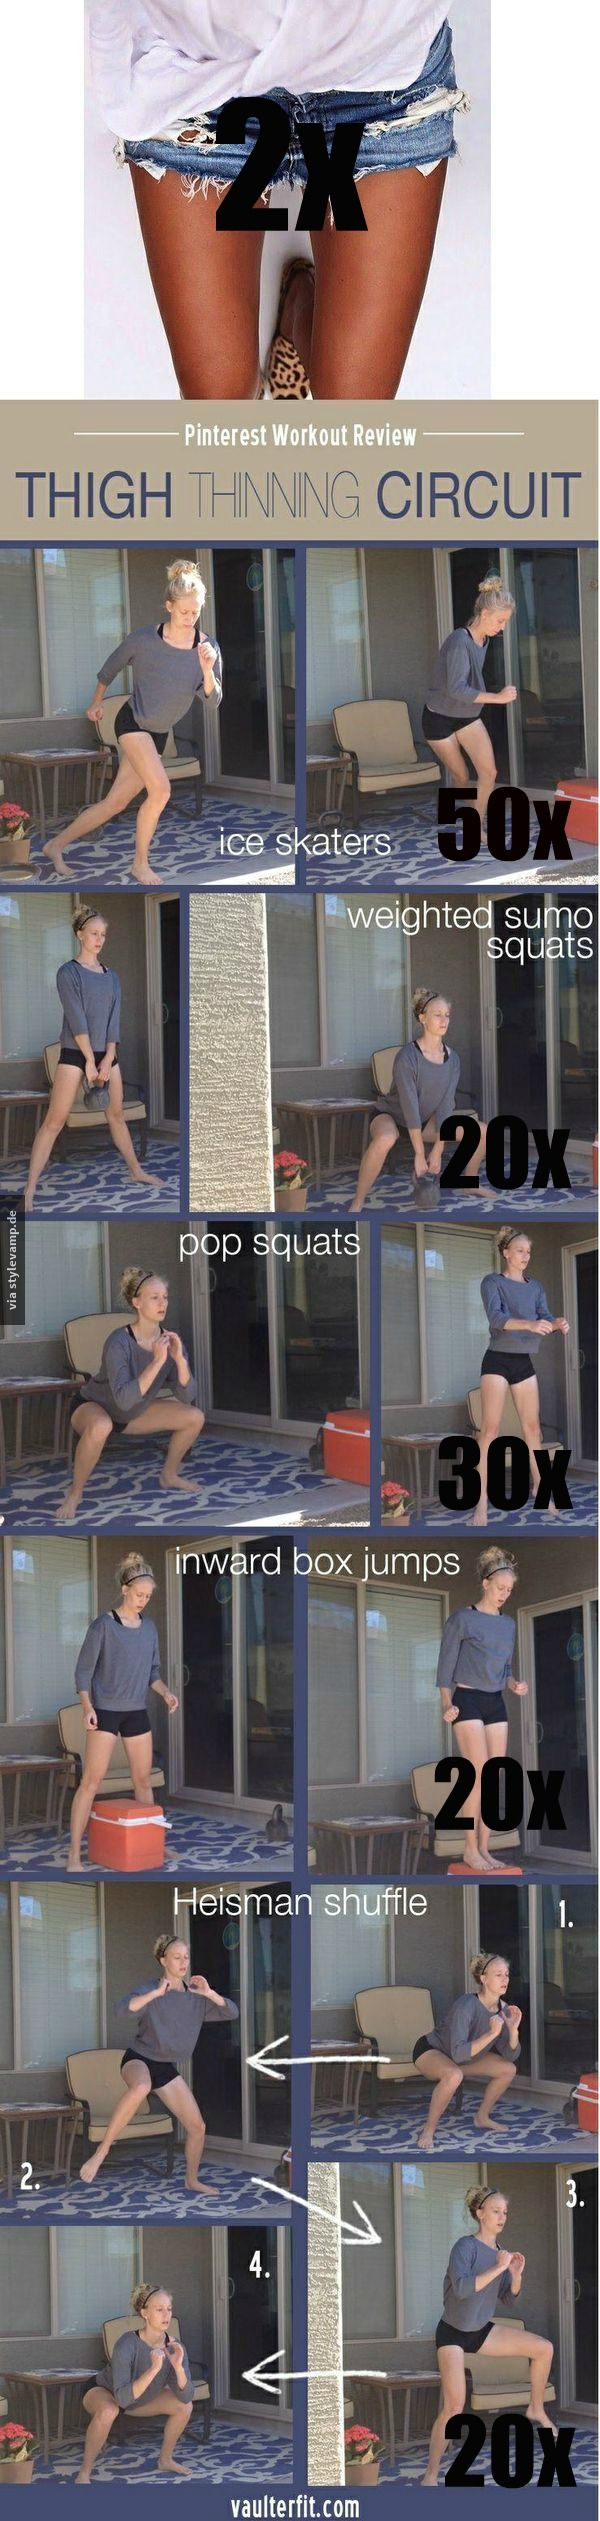 amazing thigh thinning workout!